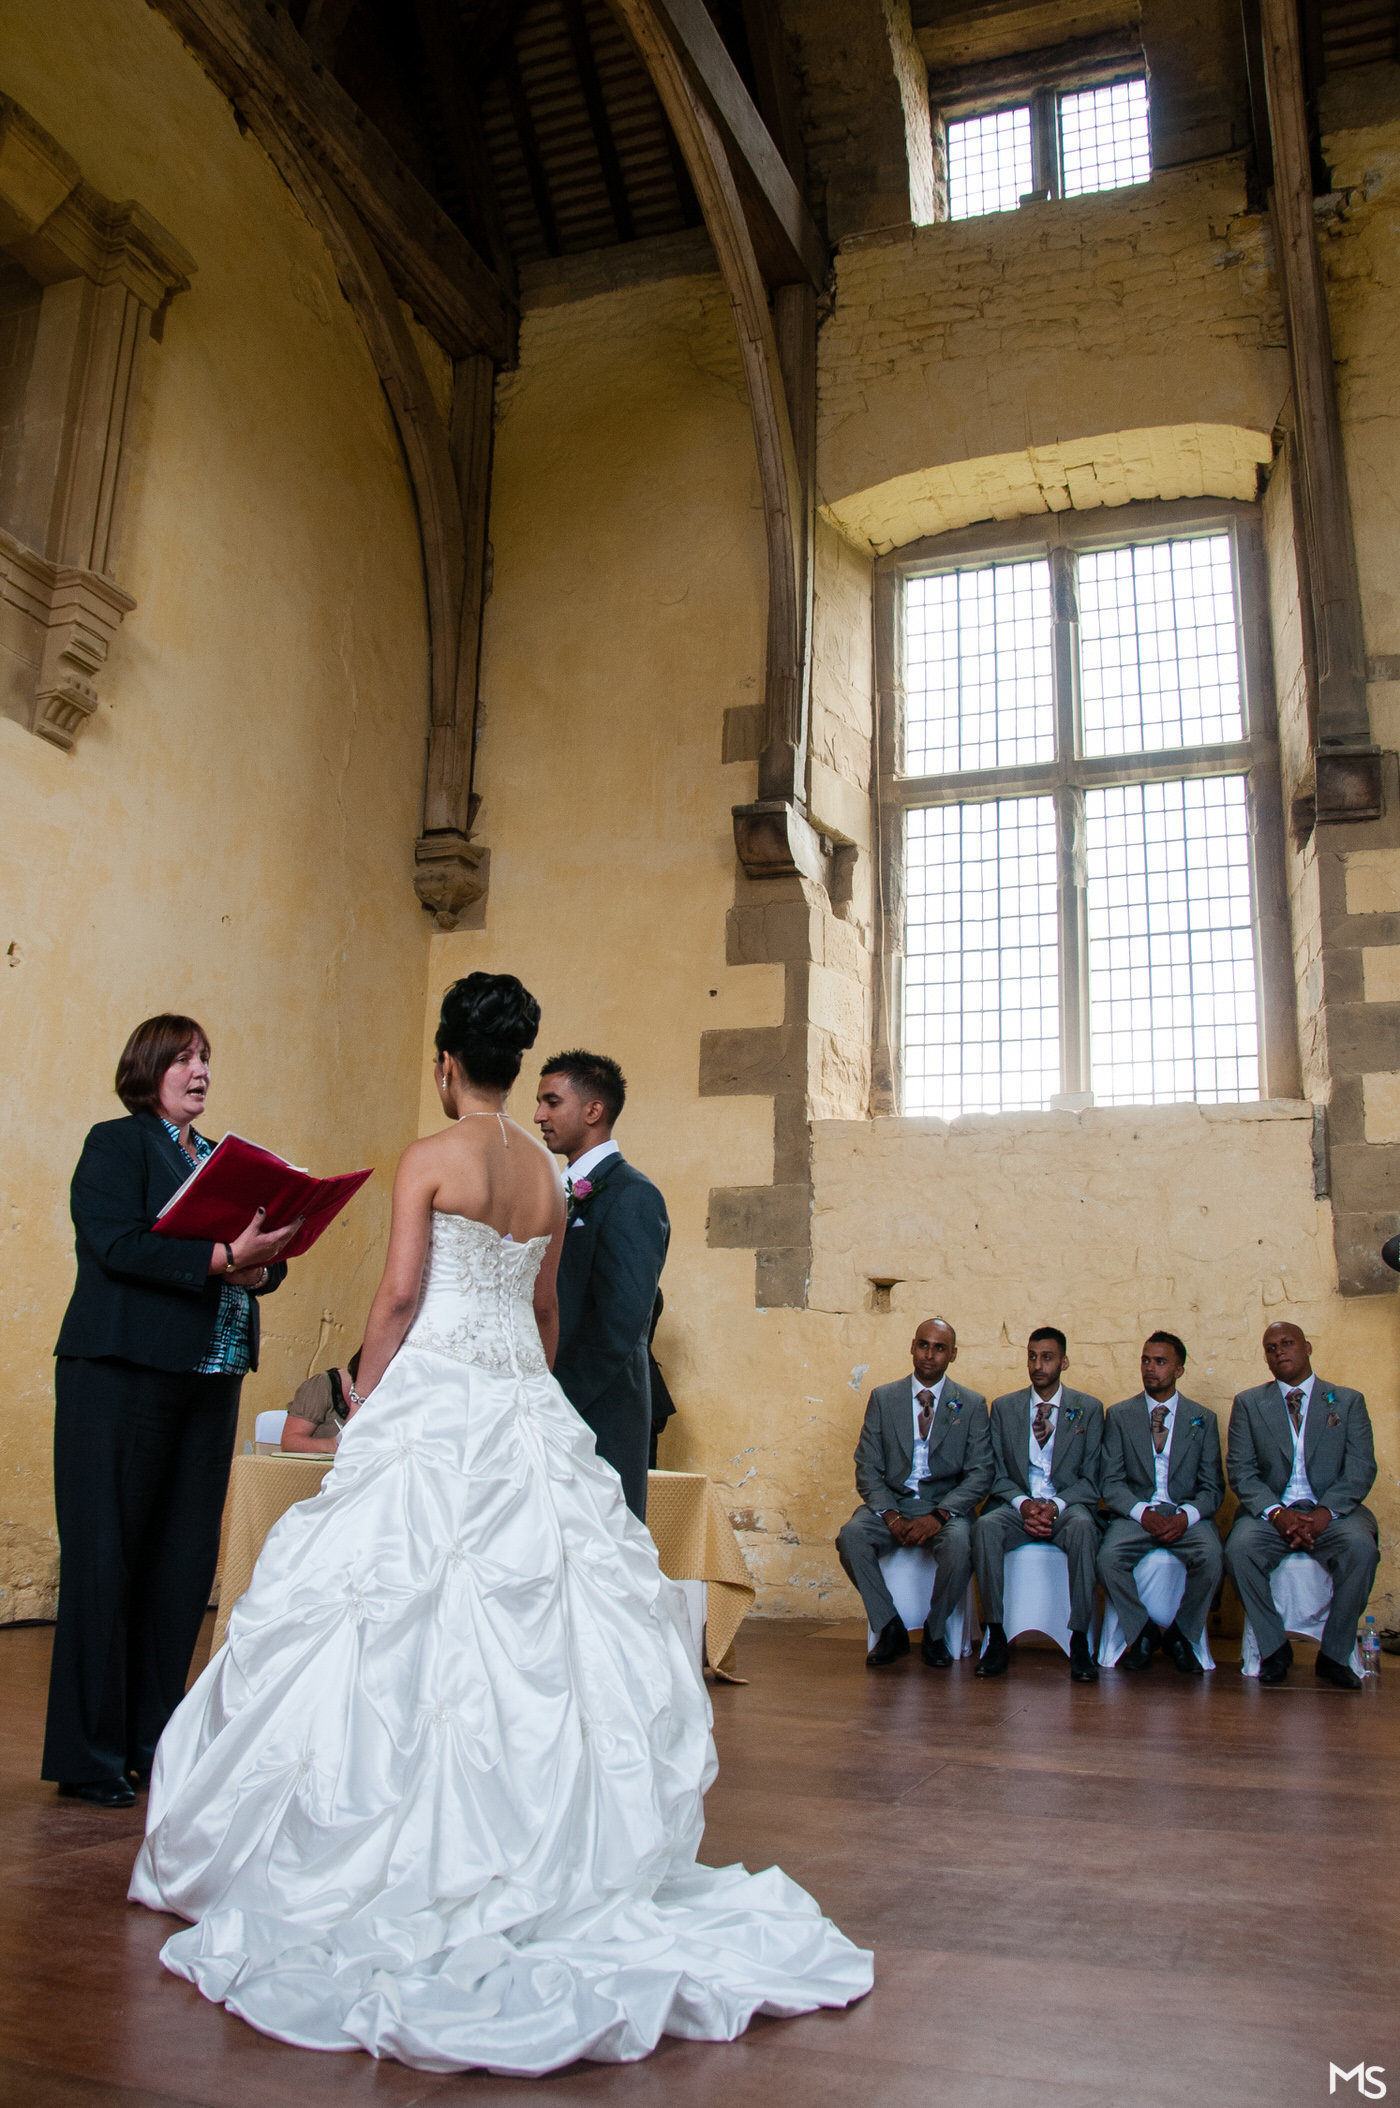 Bolsover-Castle-Indian-wedding - 11_DSC_4655.jpg